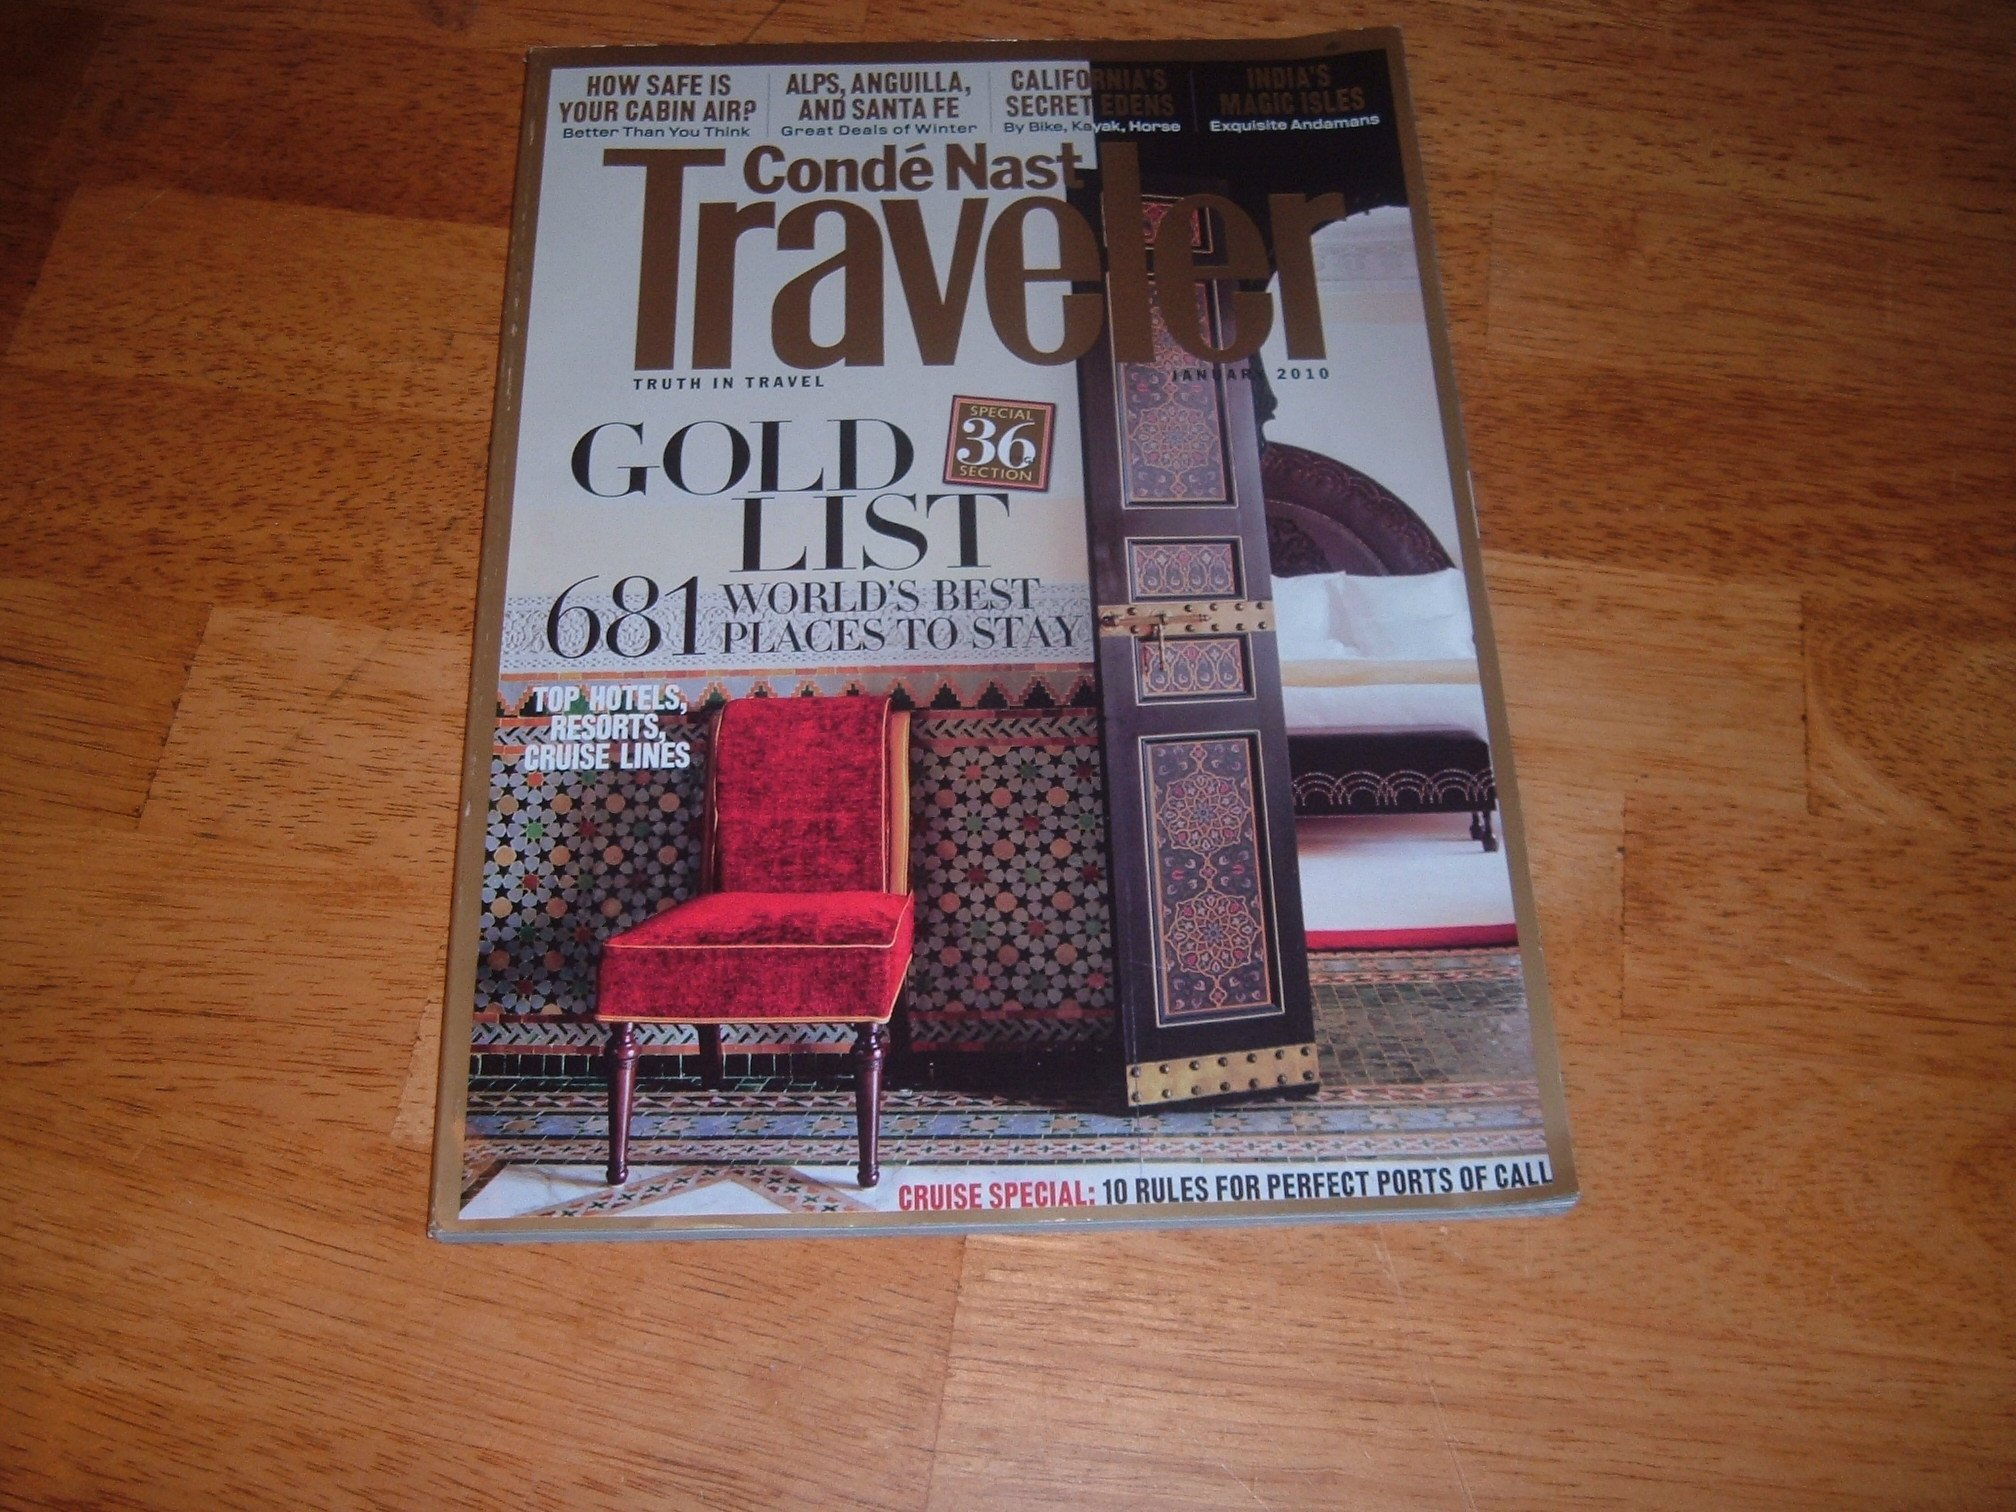 Conde Nast Traveler magazine, January 2010-Gold List & 681 World's Best Places to Stay ebook